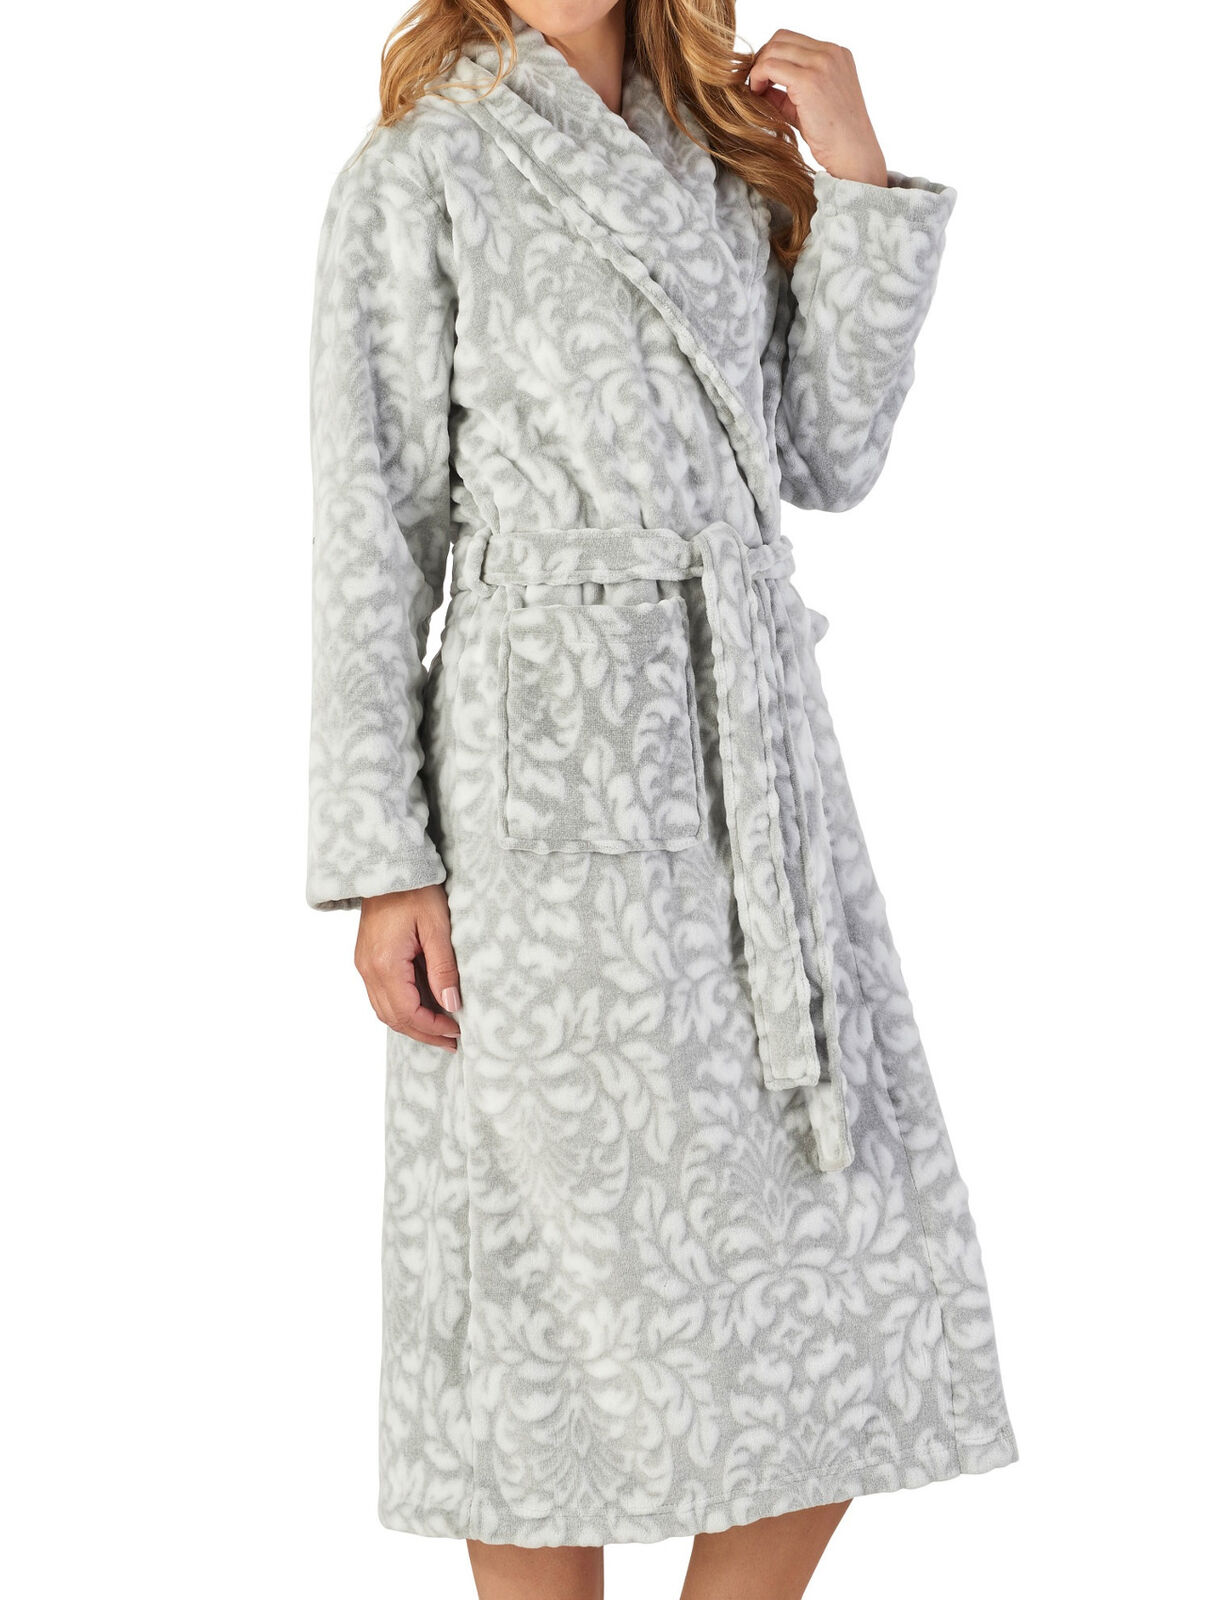 Dressing Gown Womens Floral Shawl Collar Wrap Fleecy Robe Slenderella Housecoat